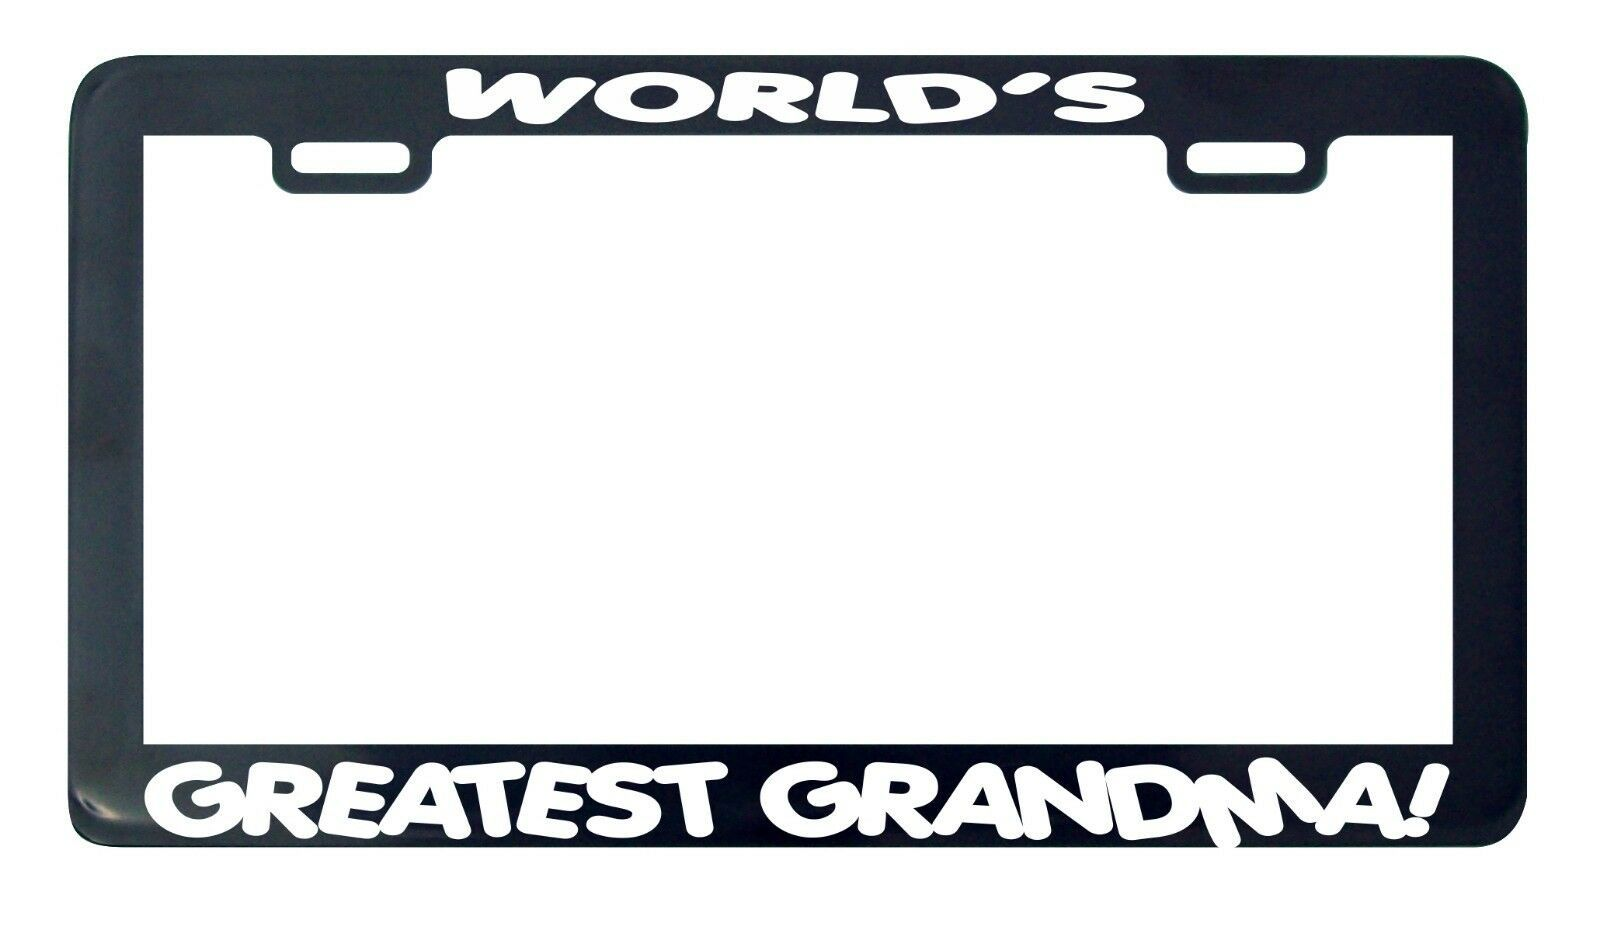 Primary image for World's Greatest Grandma license plate frame holder tag